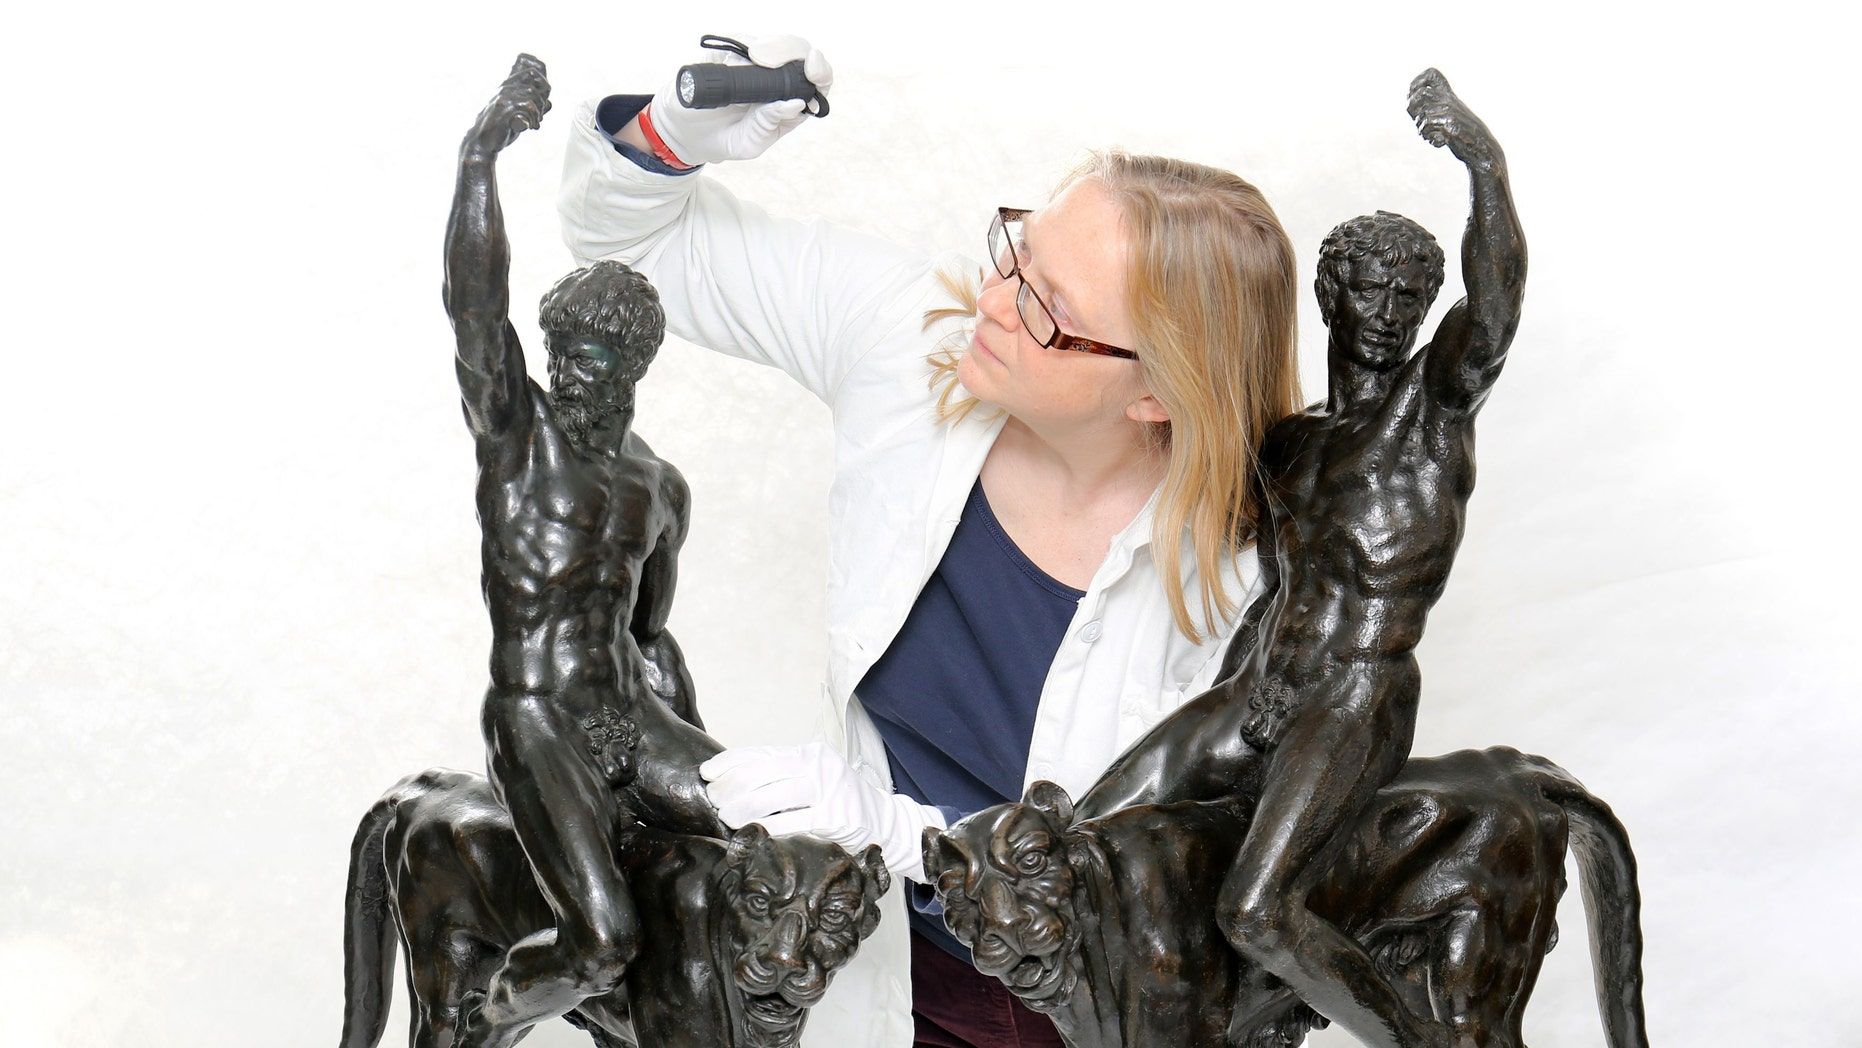 Dr Victoria Avery, keeper of applied arts at the Fitzwilliam Museum at the University of Cambrdige examines two bronze sculptures thought to be works by Michelangelo.